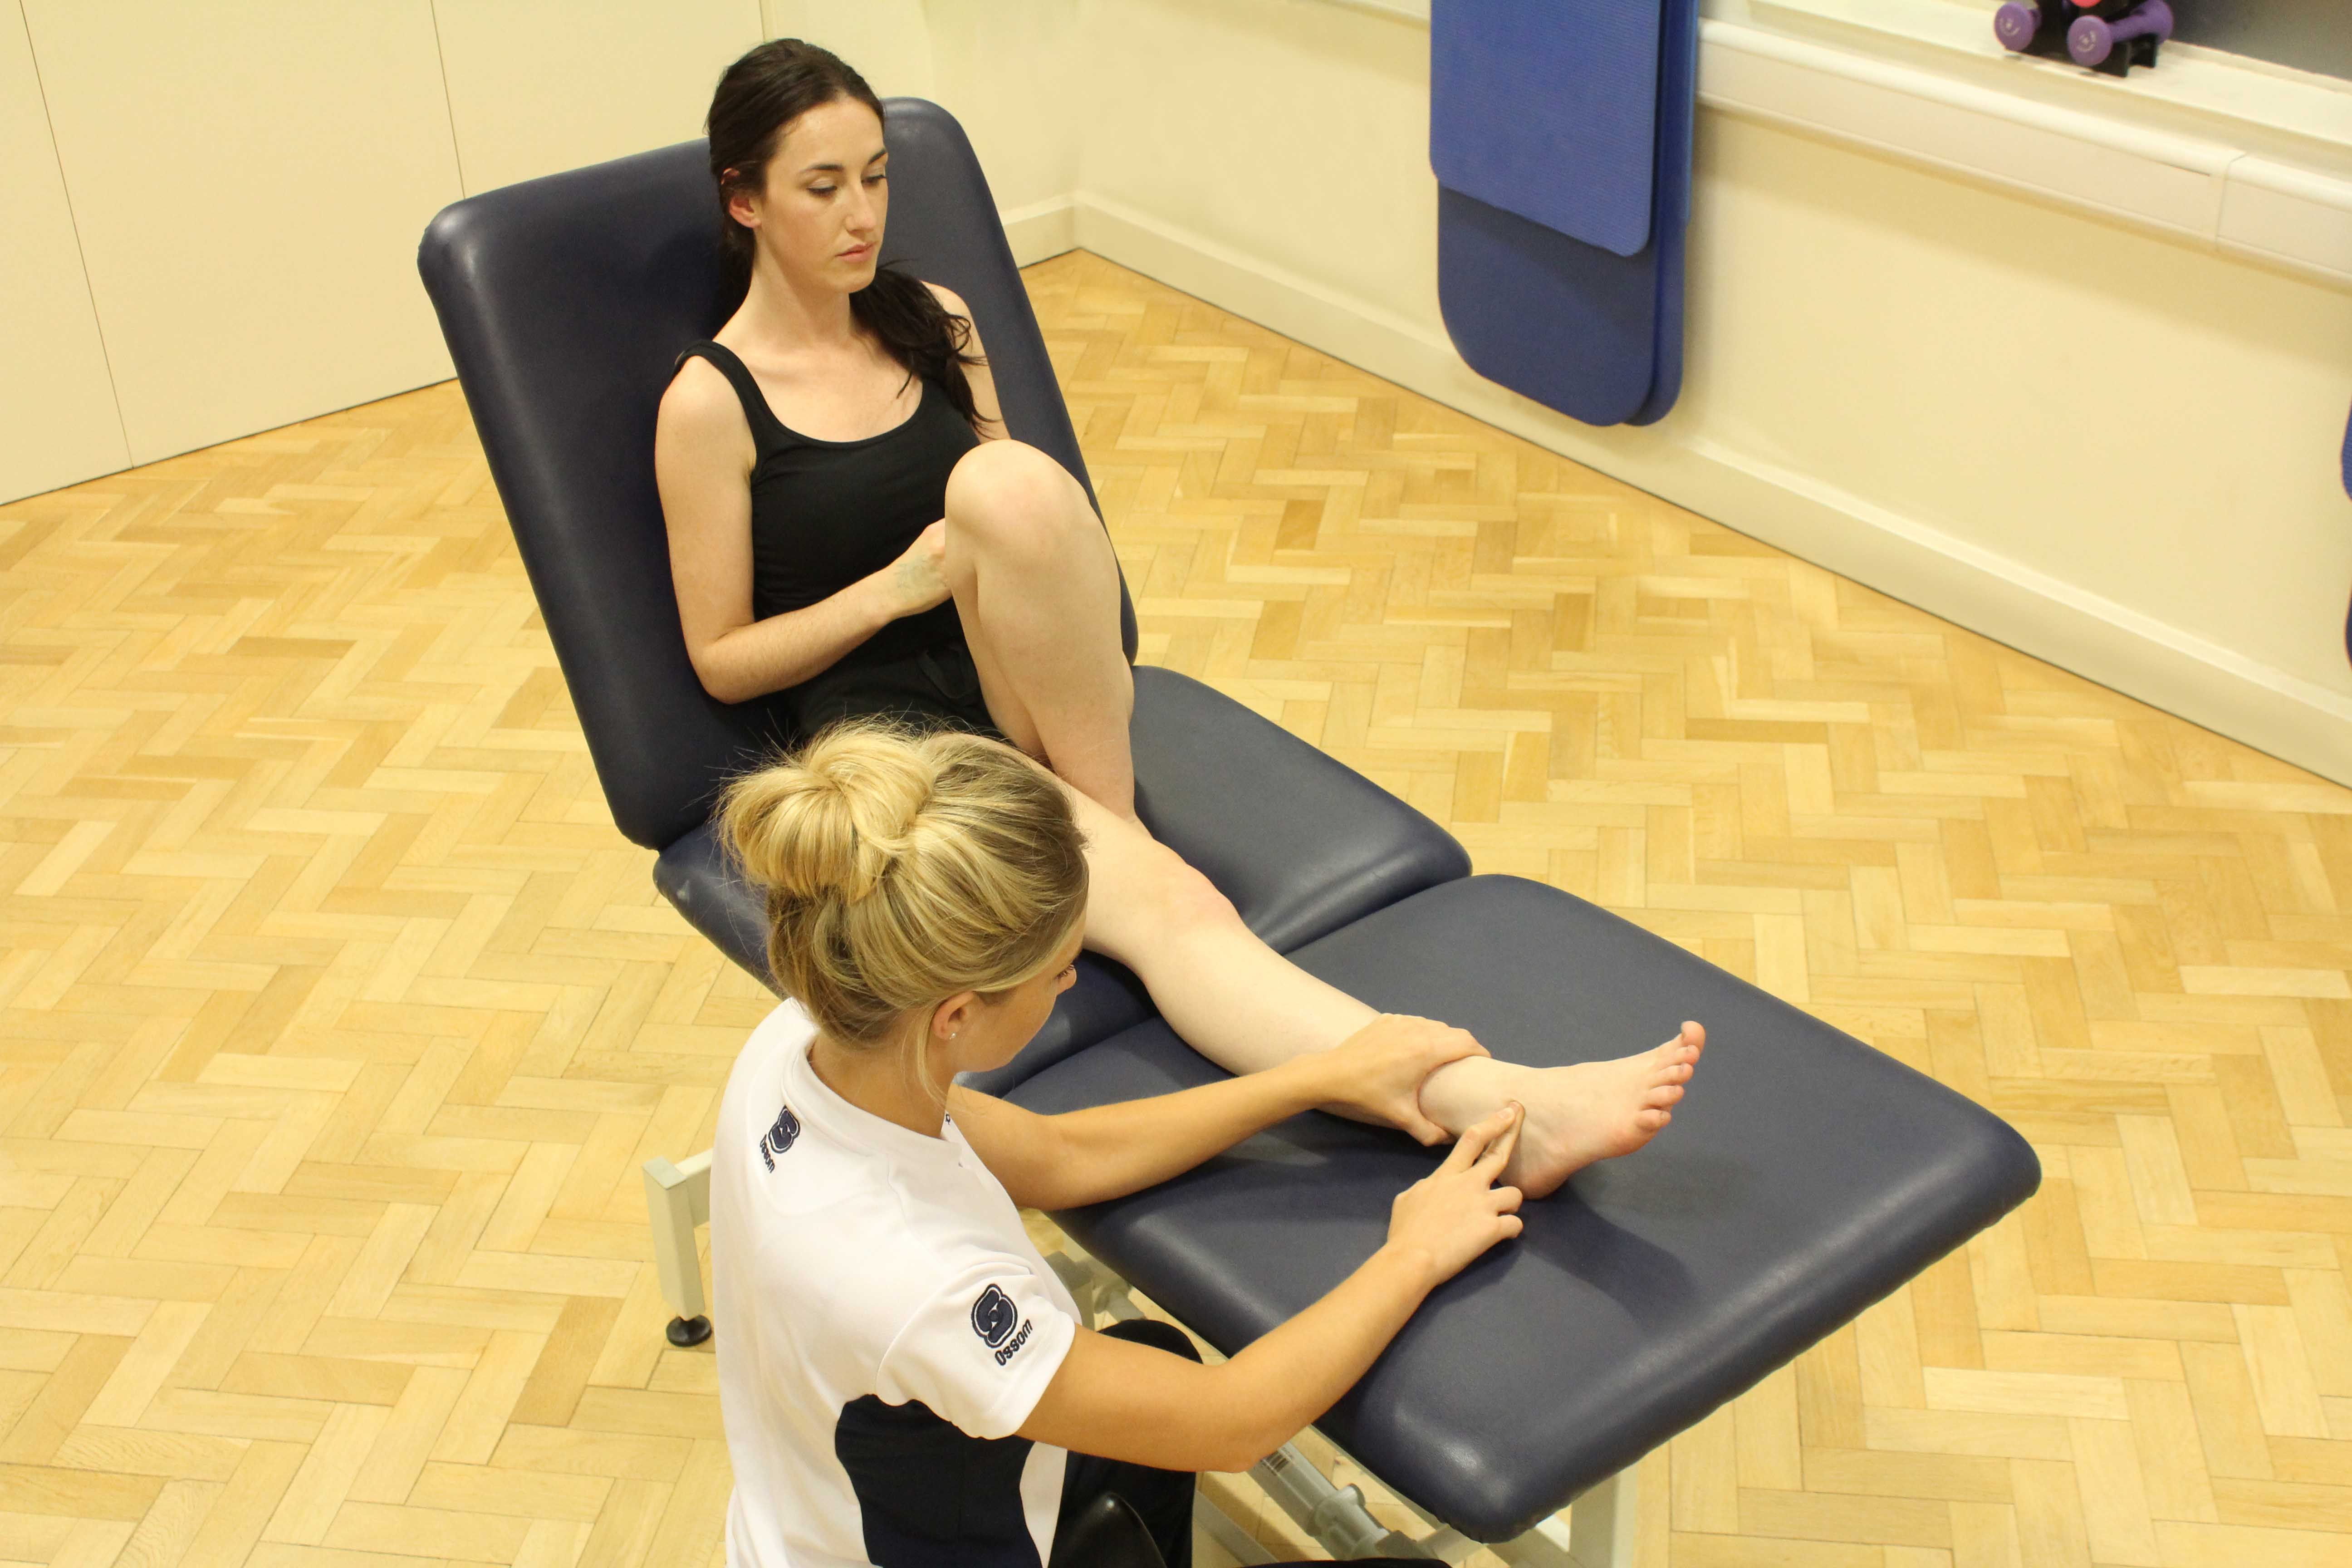 Friction massage applied to the inferior peroneal retinaculum ligament.